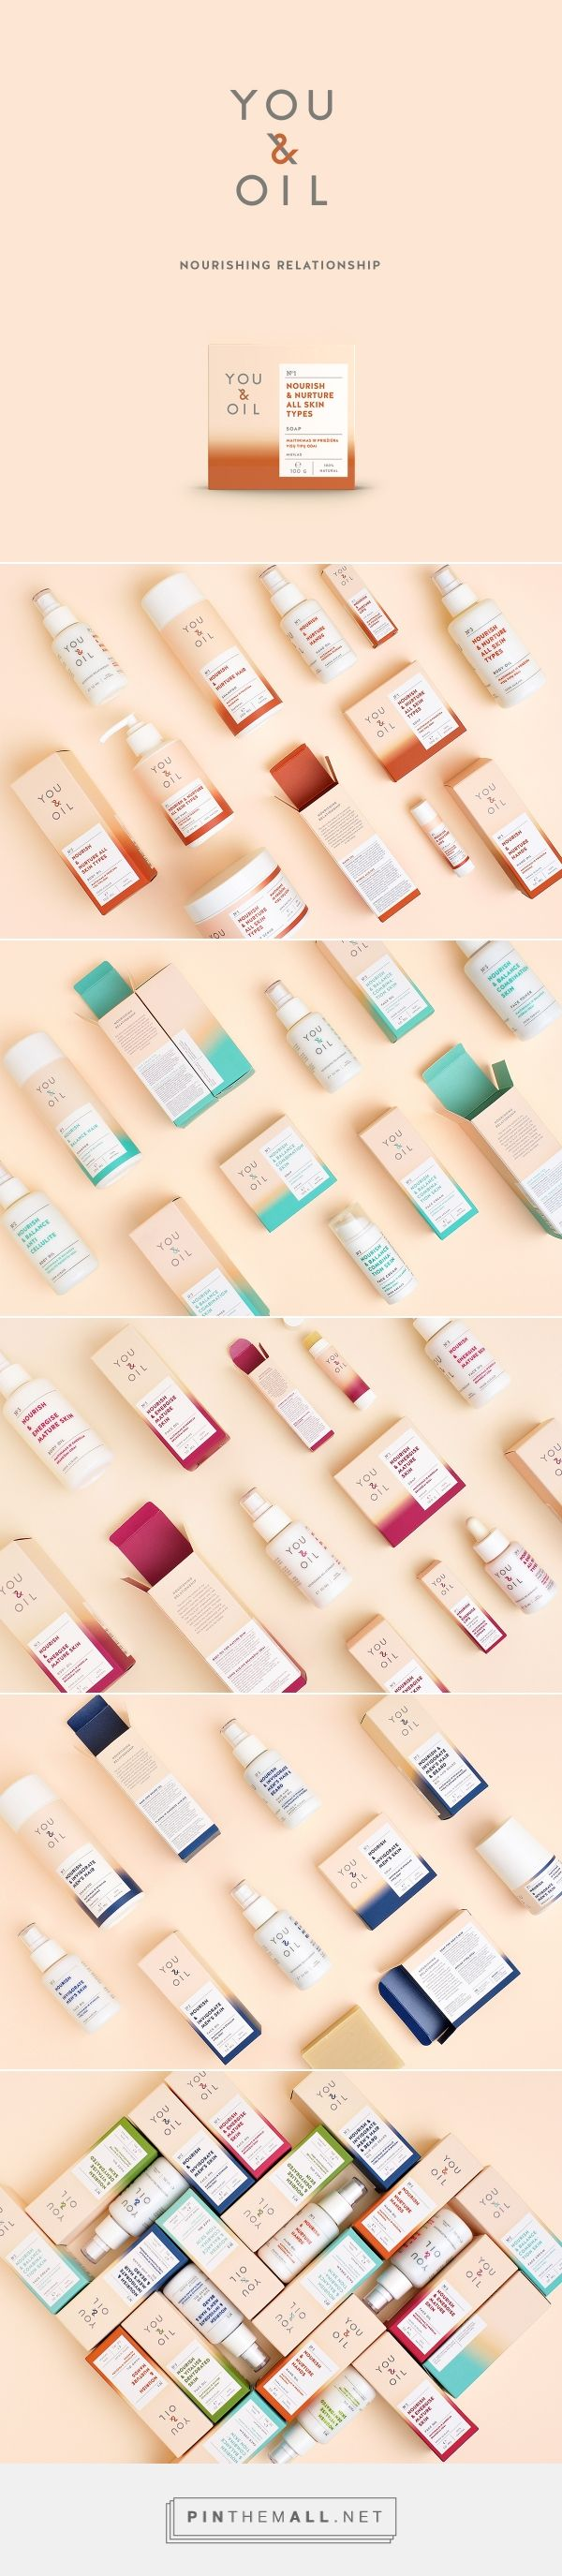 Branding, graphic design and packaging for YOU OIL natural cosmetics targeting Millennials on Behance curated by Packaging Diva PD. New design and logo for natural cosmetics You Oil, created after brand strategy proposed by Black Swan Brands.